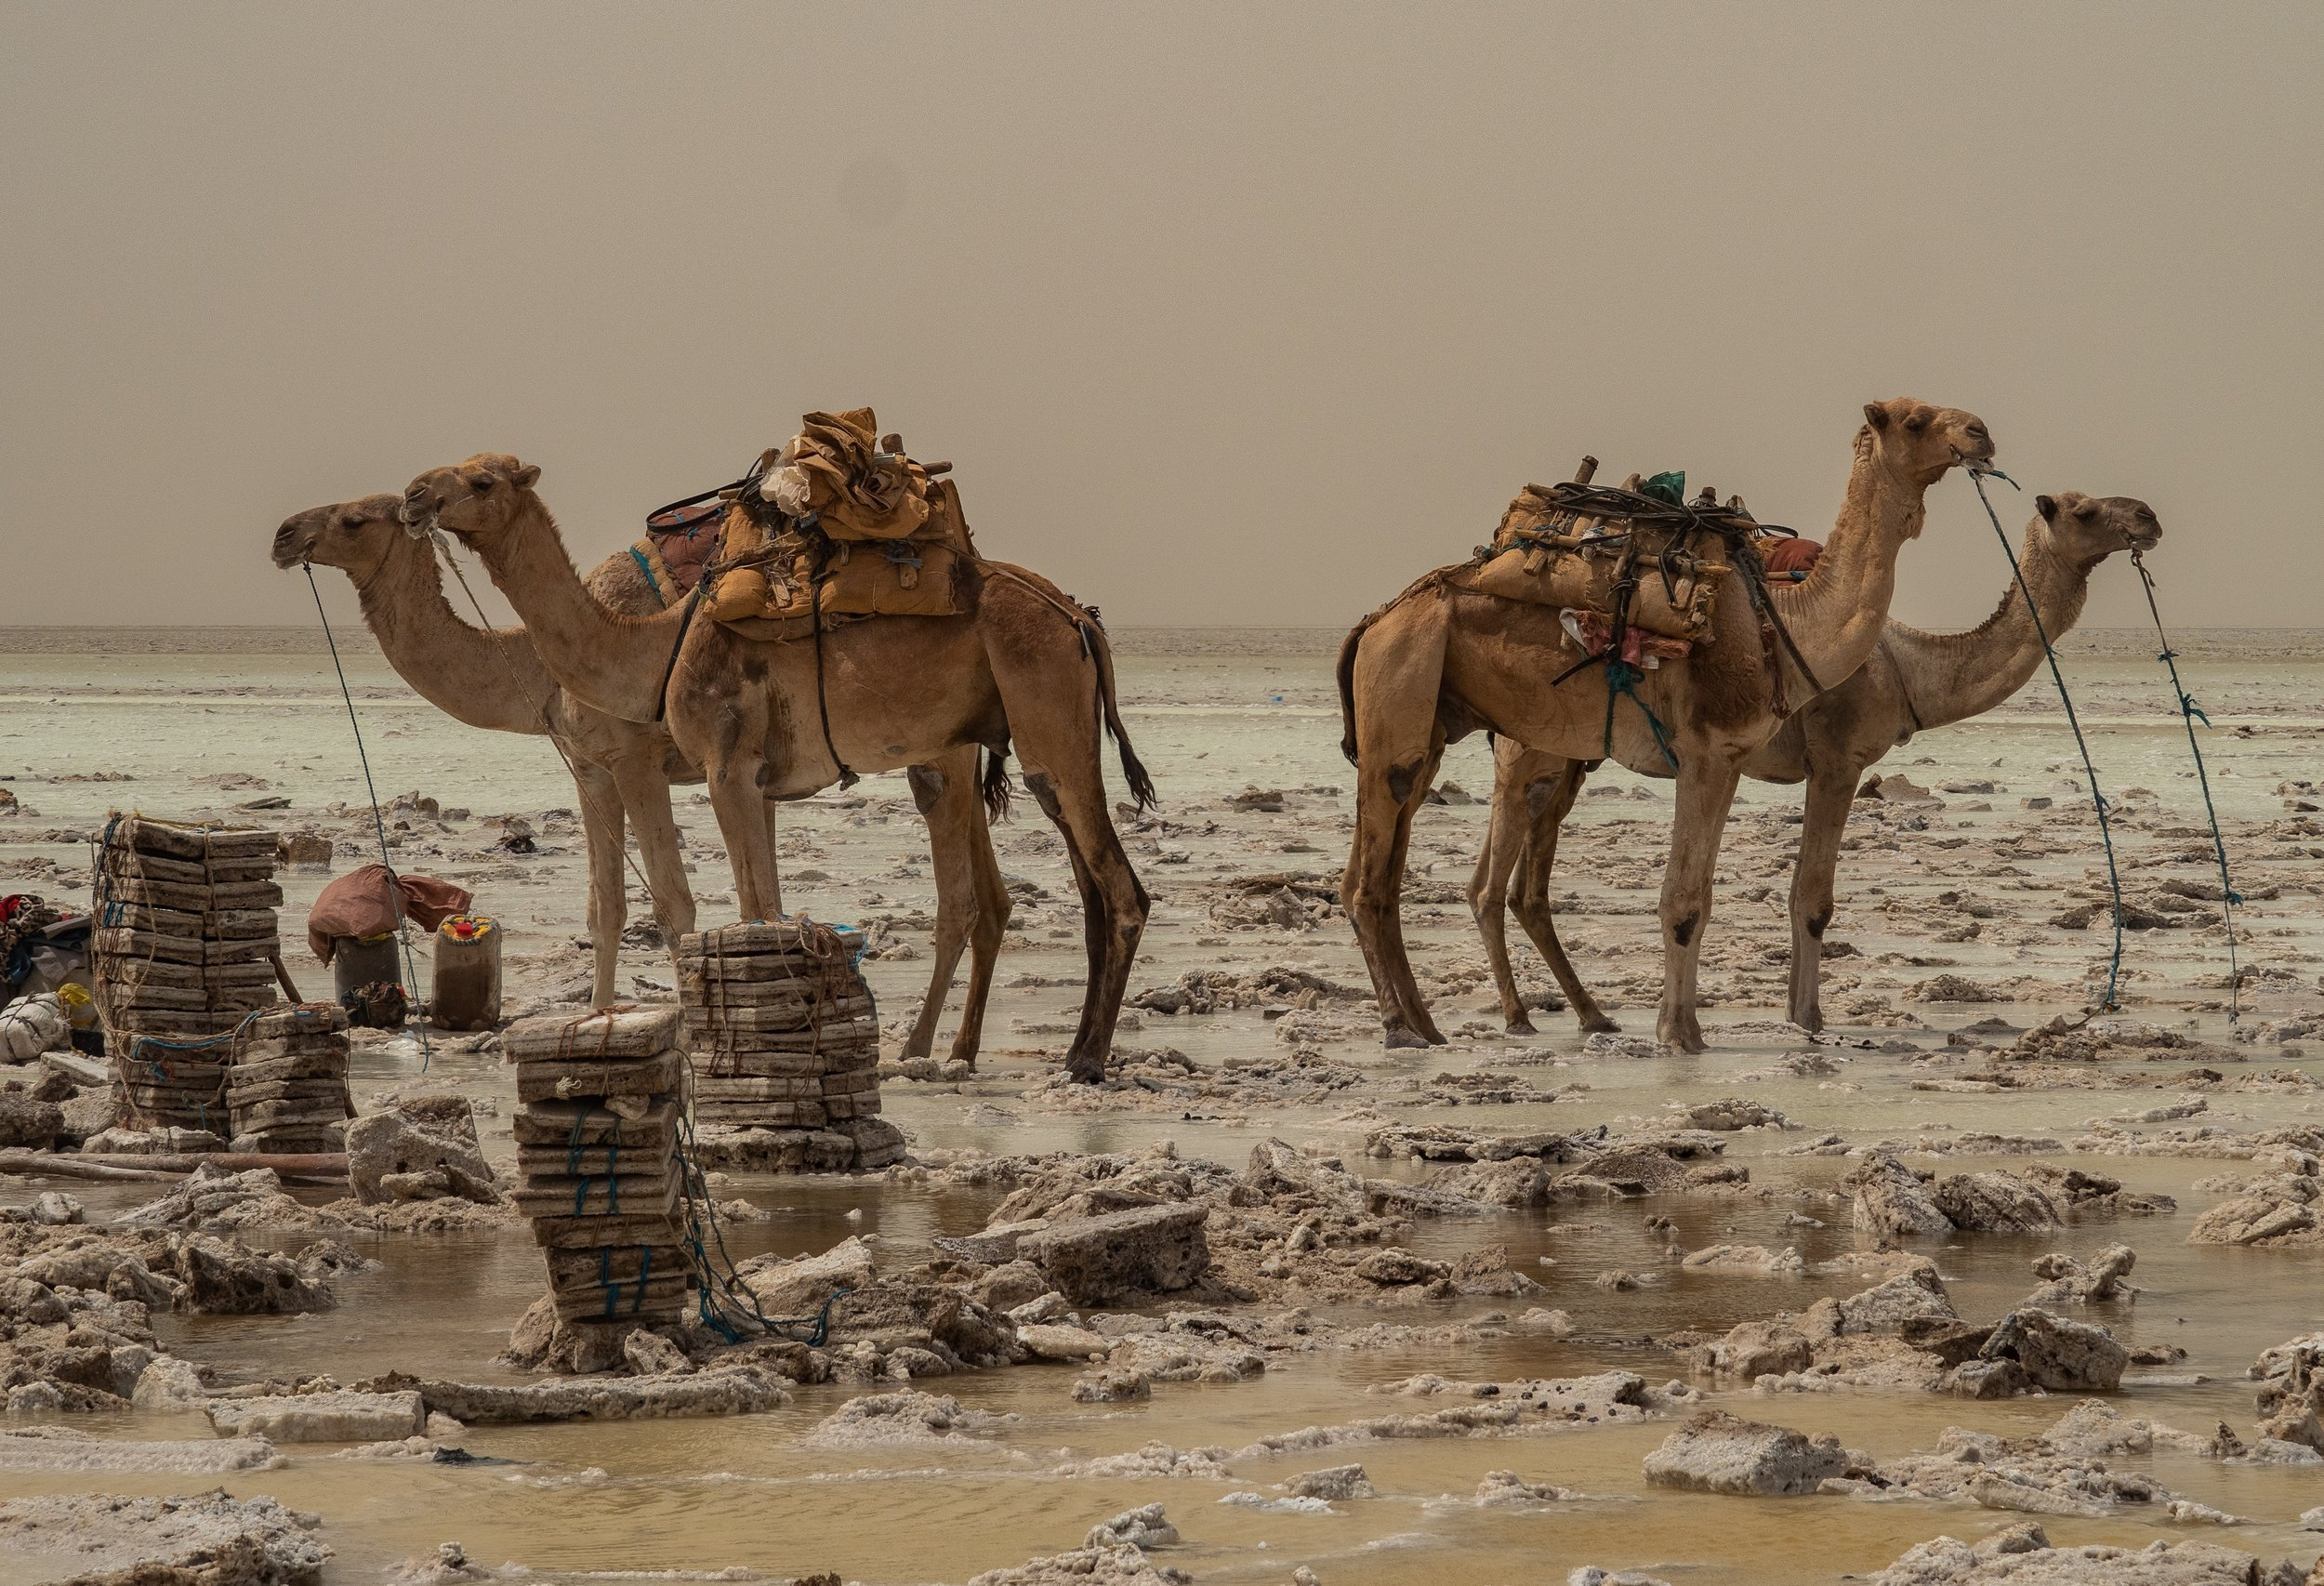 Camels in the Danakil Depression by Lesly Derksen